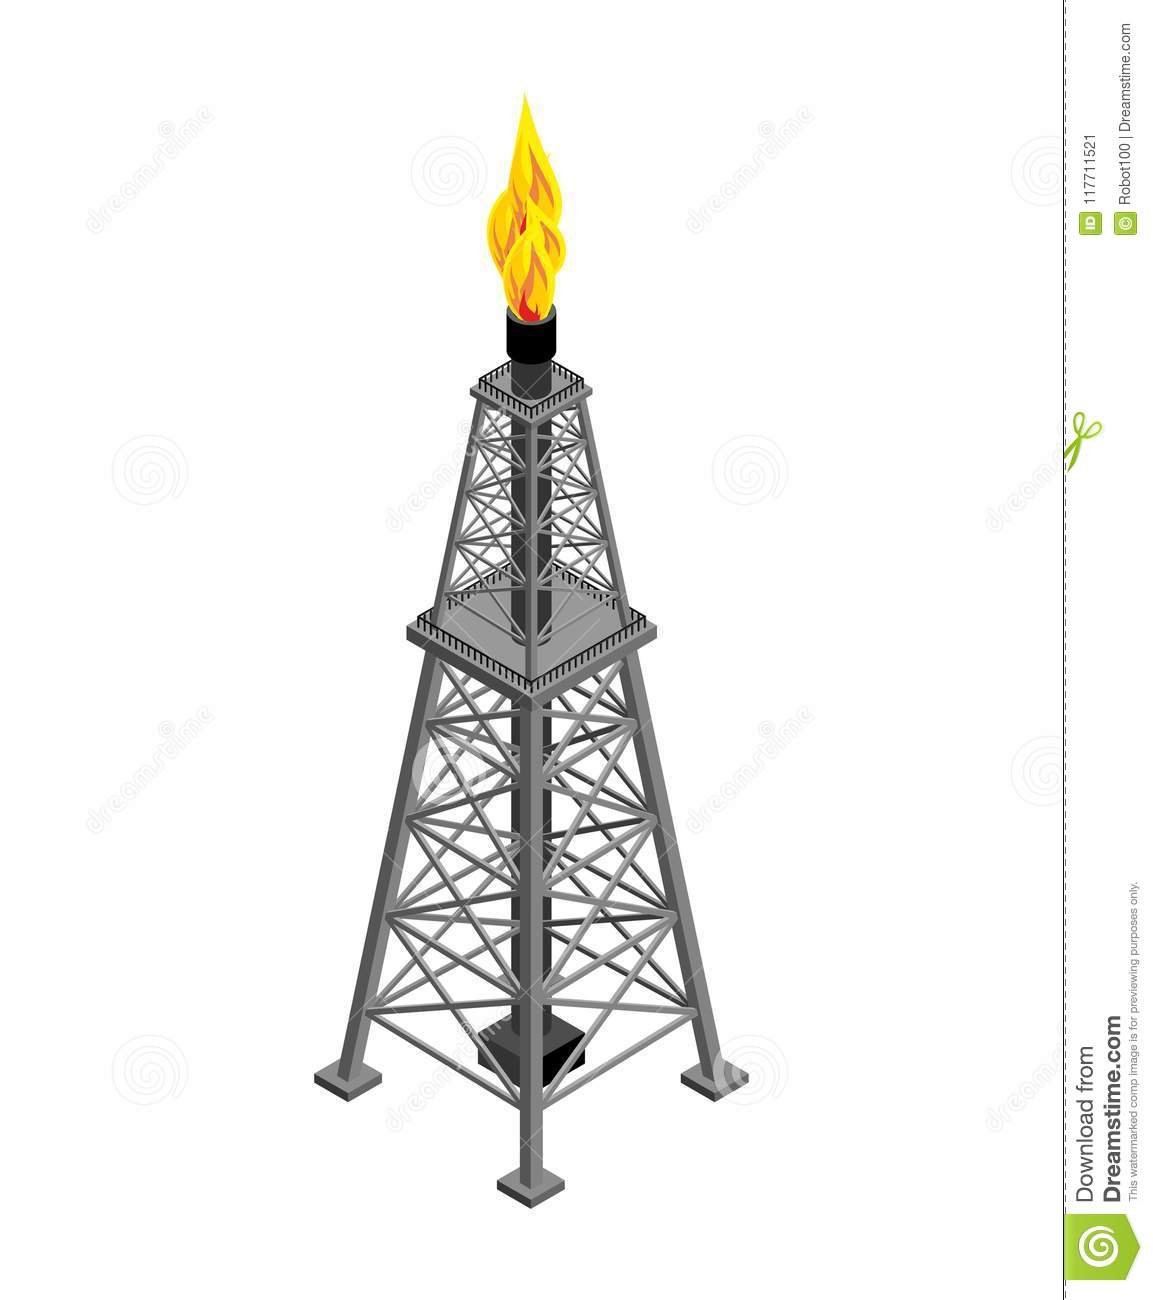 Gas Tower Isometric Industrial Object Vector